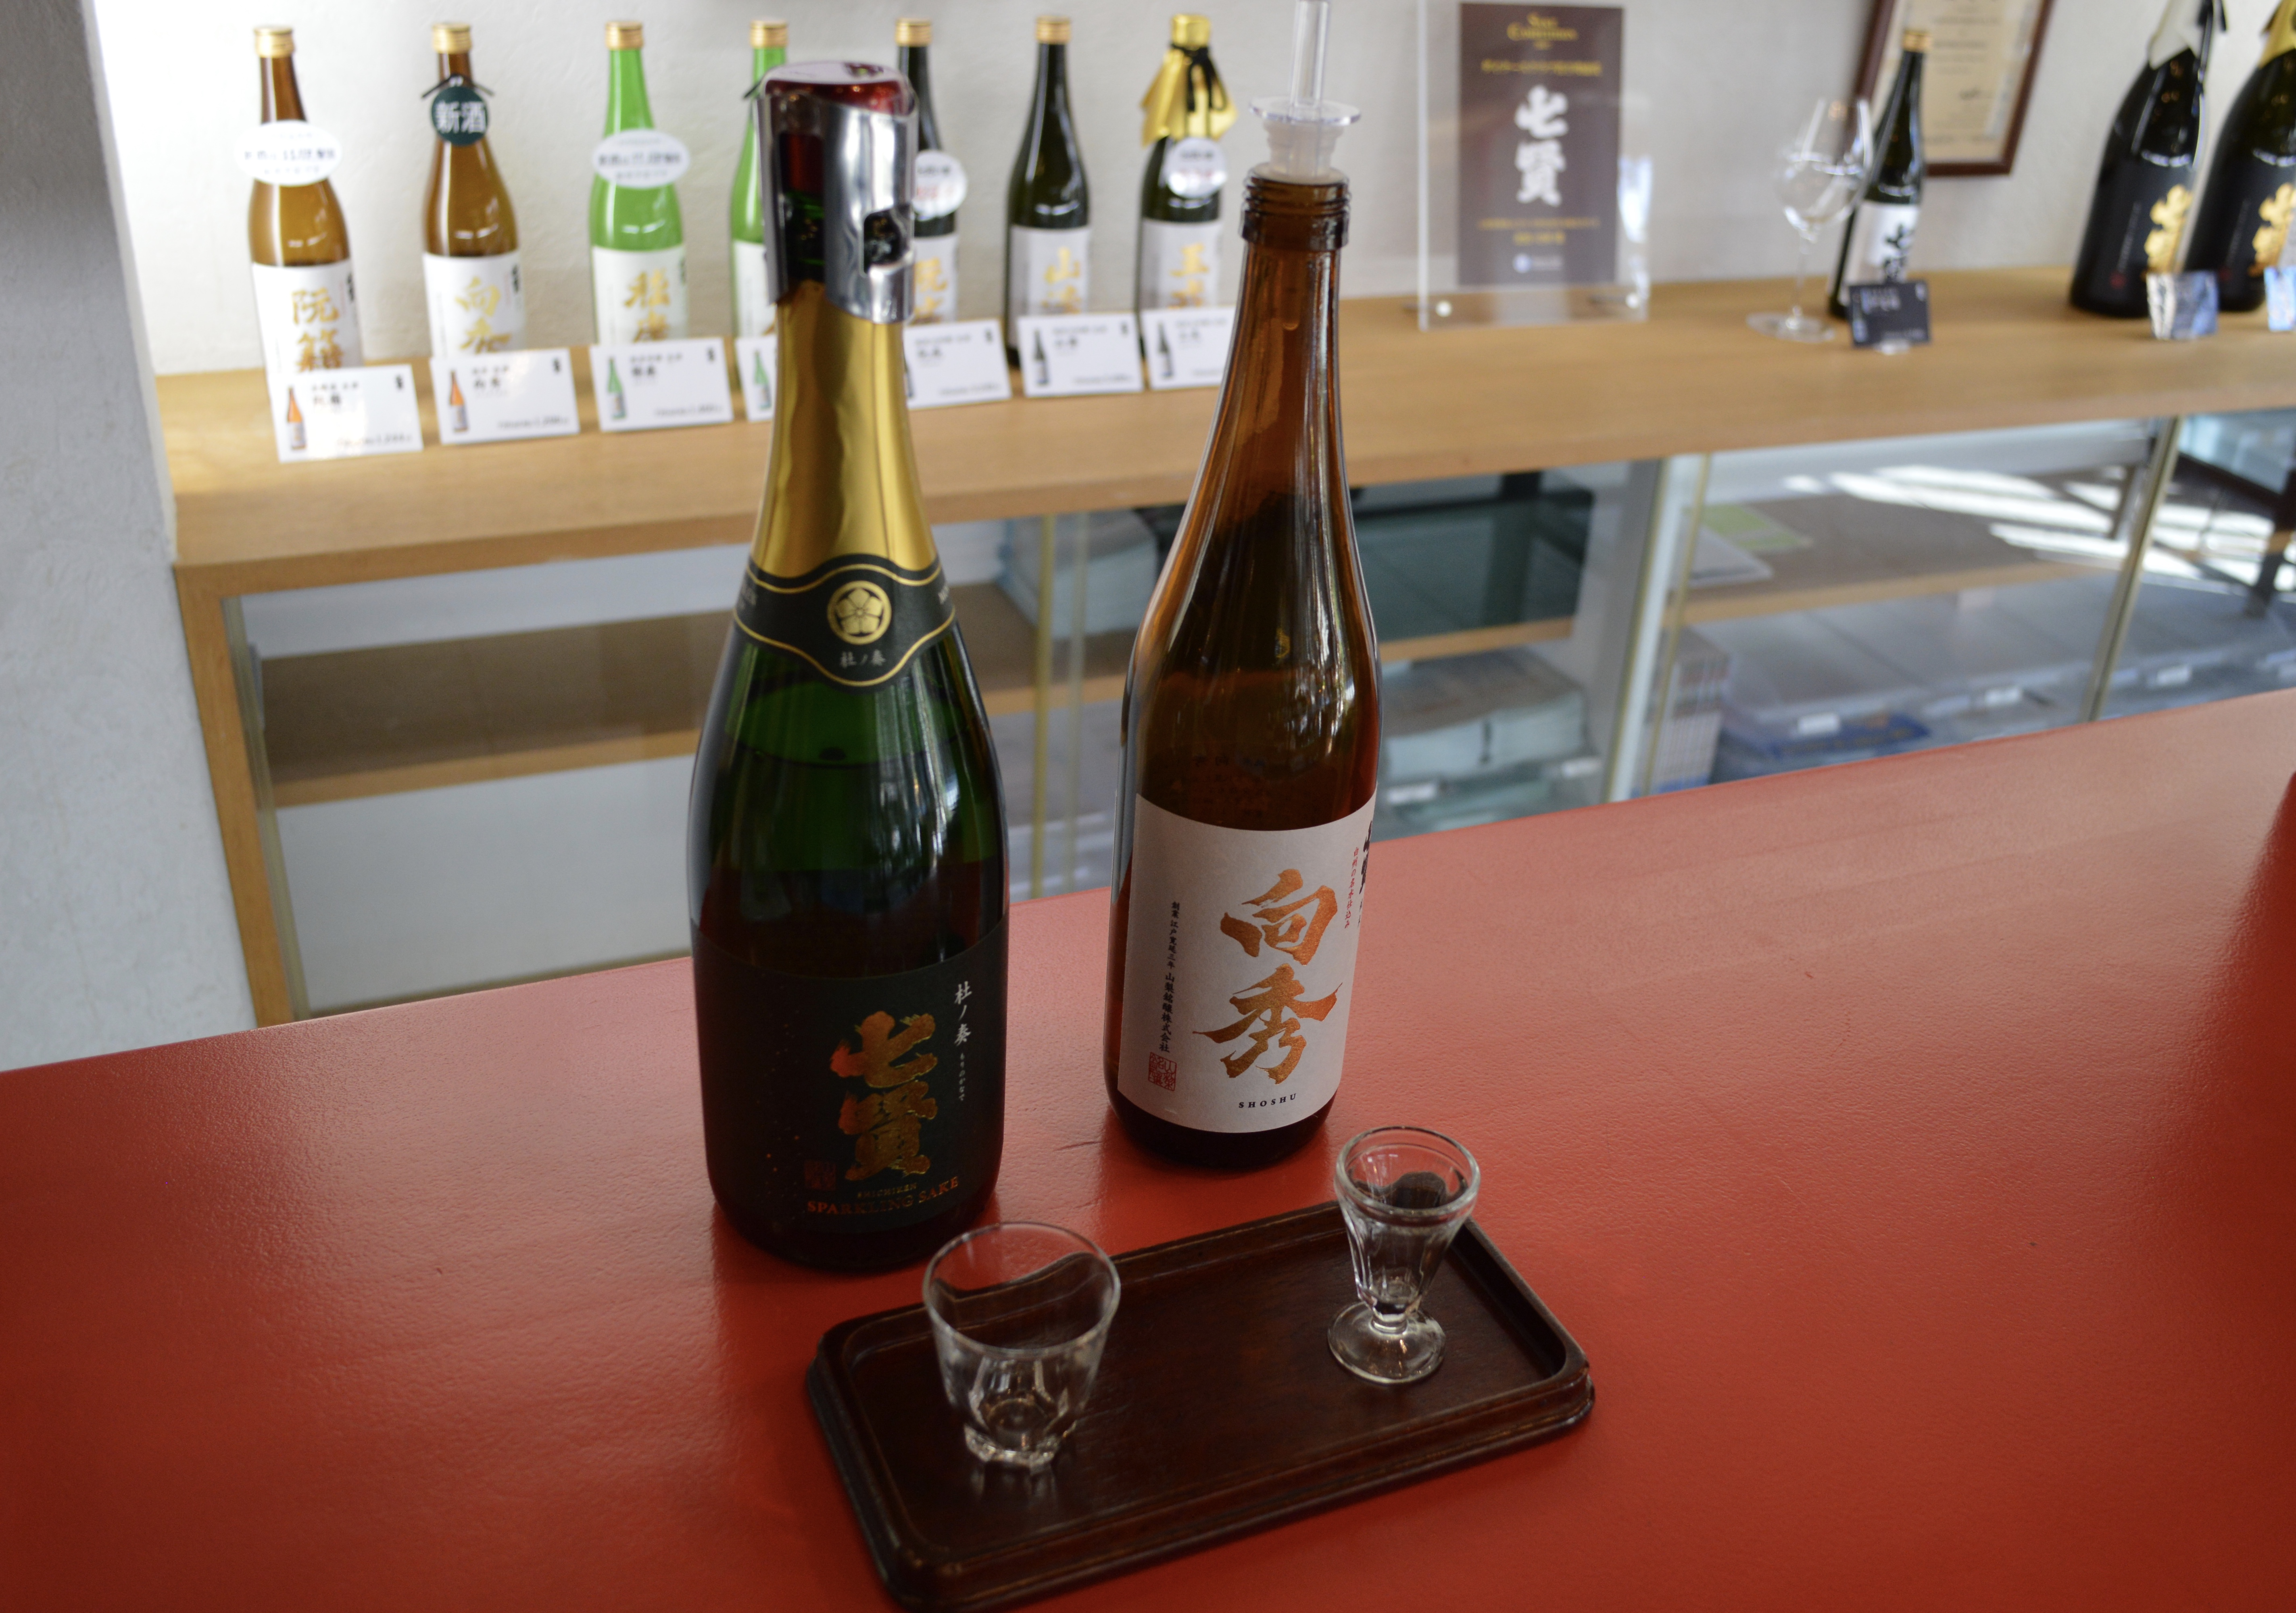 Ryogo Kitahara has also developed a sparkling sake that has its initial fermentation in oak barrels (left).